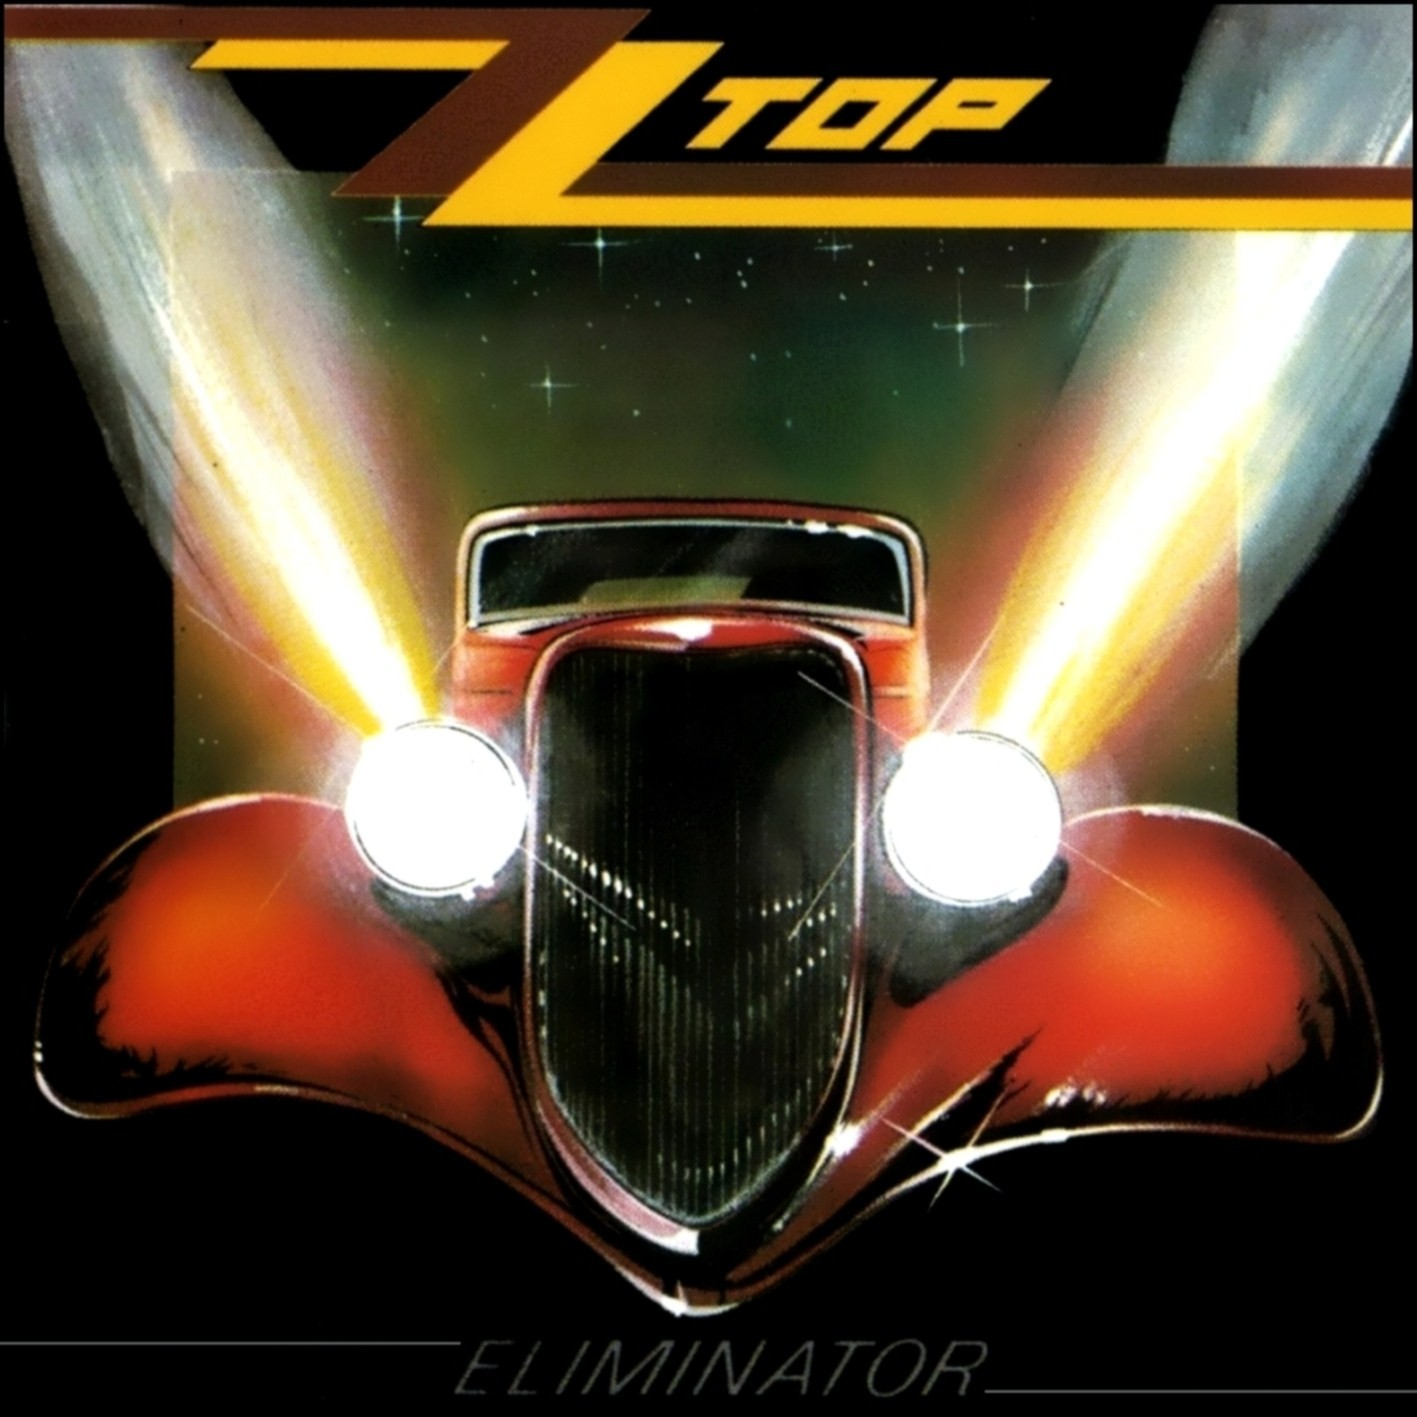 ZZ TOP - Eliminator cover